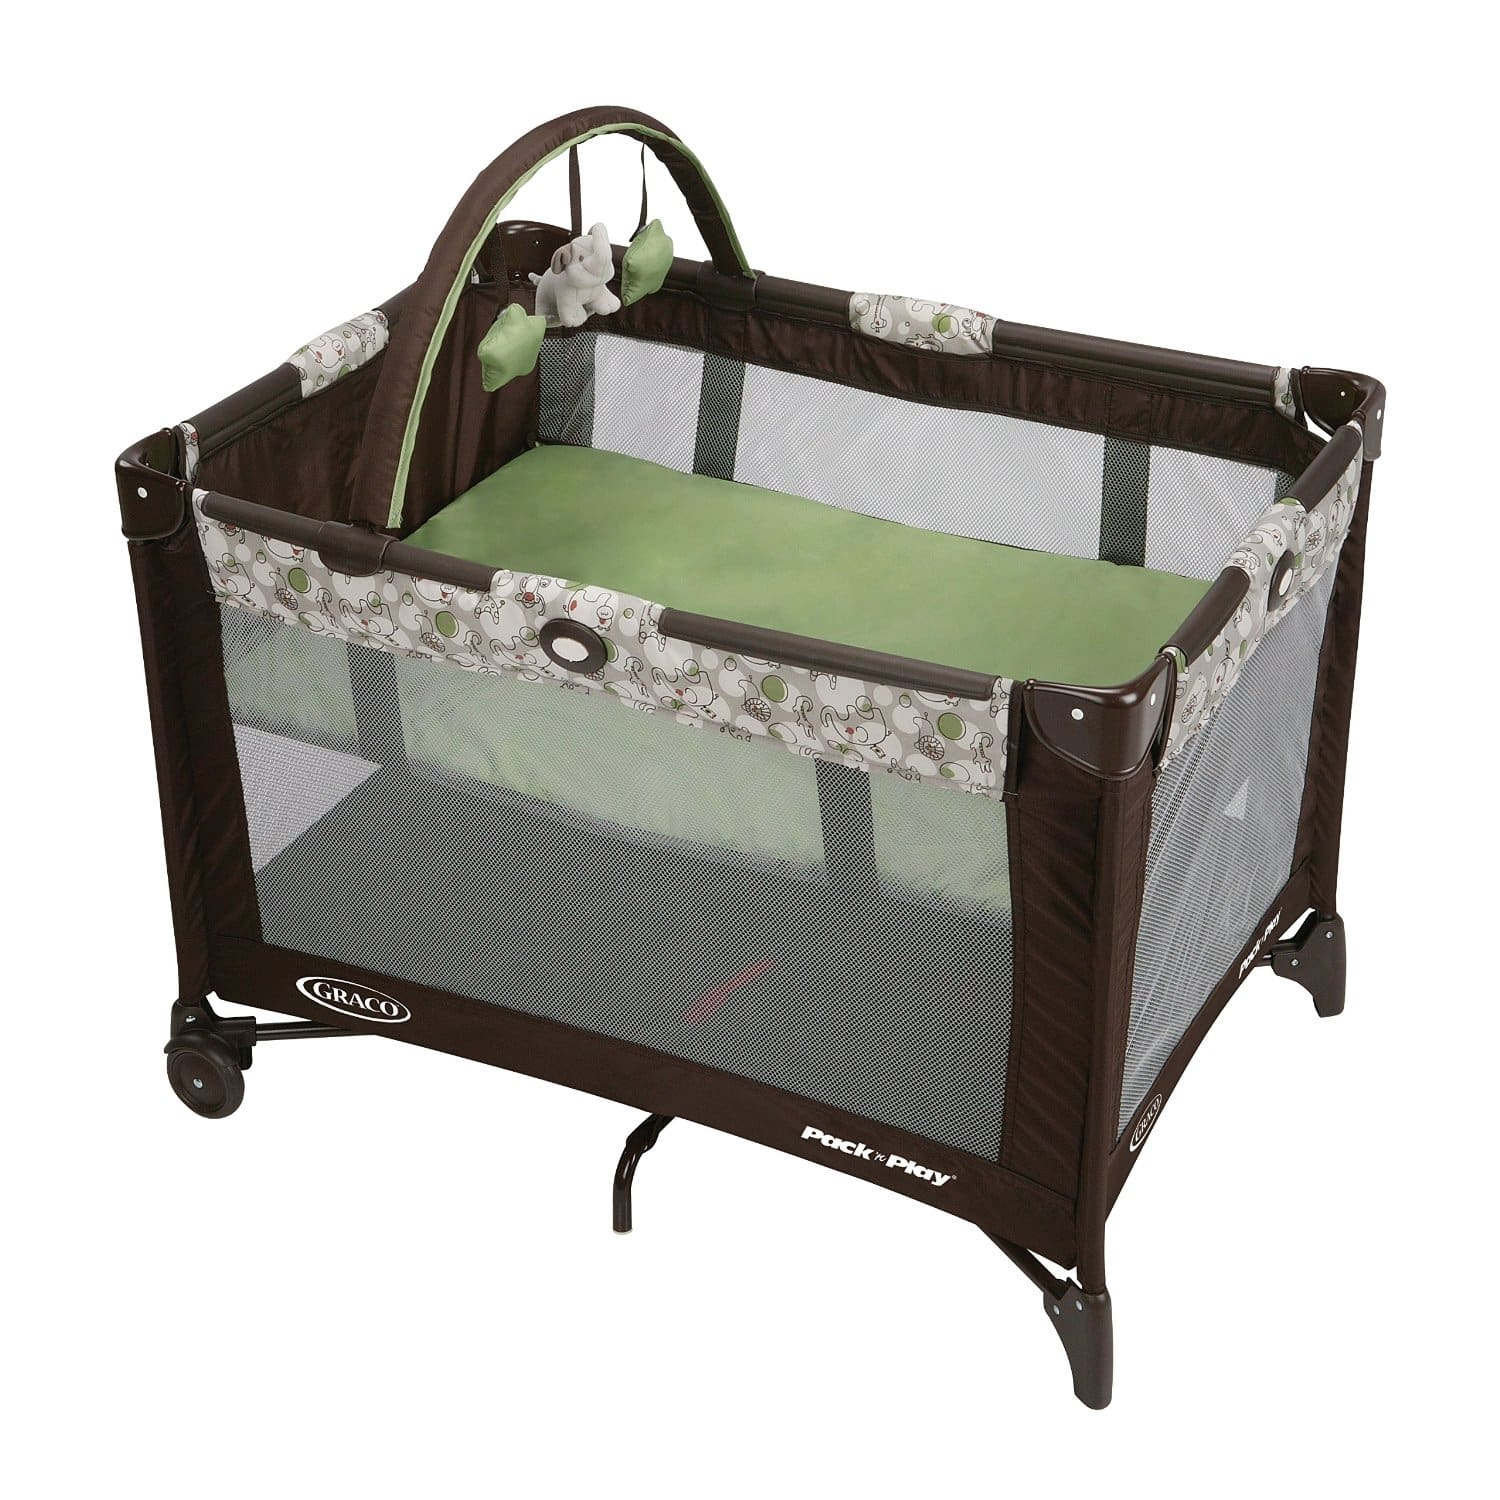 Graco Pack N Play Playard with Automatic Folding Feet, Zuba 32.88 + Free Shipping on Orders Over $49